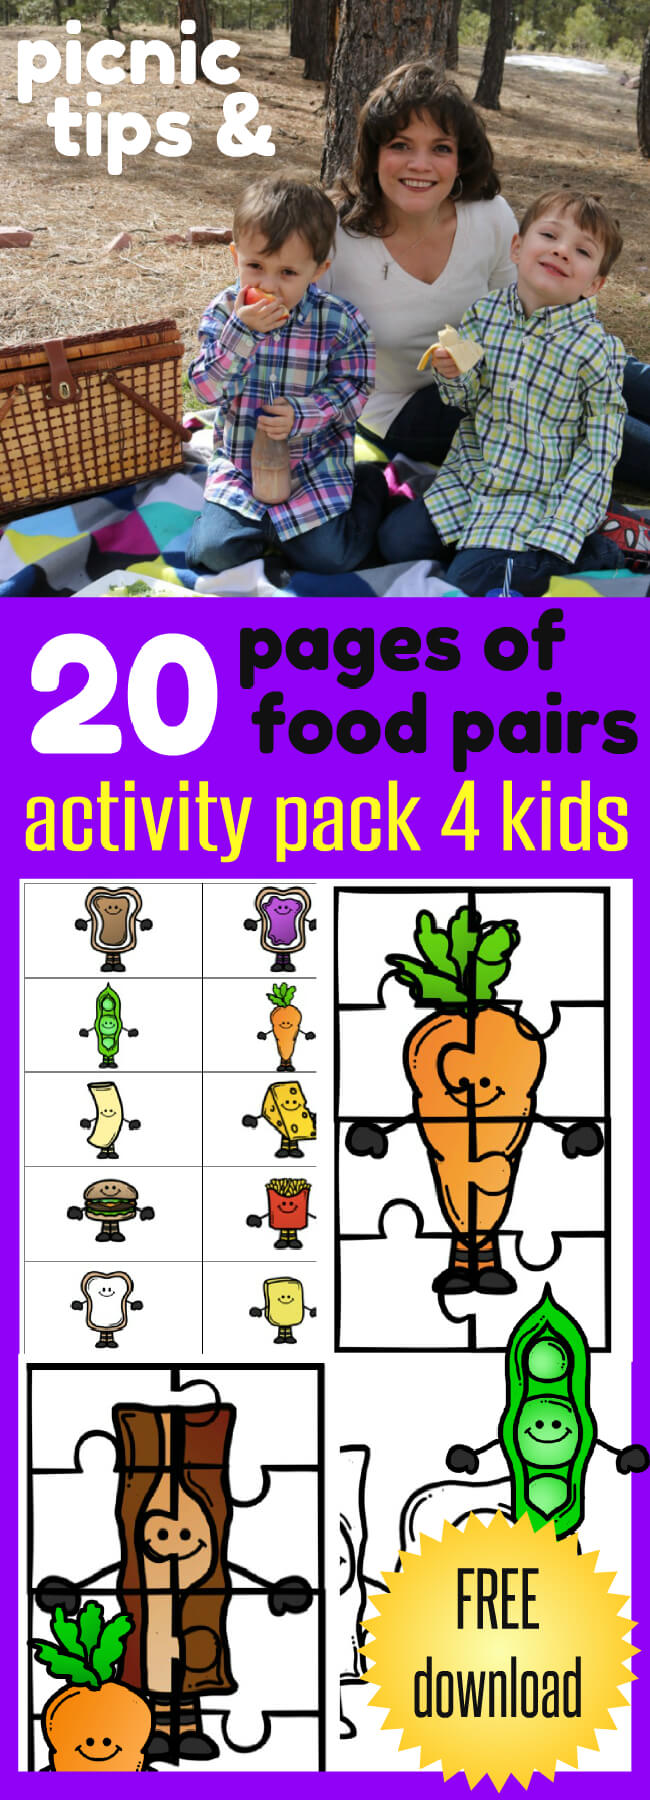 Picnic Tips and FREE printable 20 Pages of food pairs activity pack for kids - fun for the whole family from HappyandBlessedHome.com